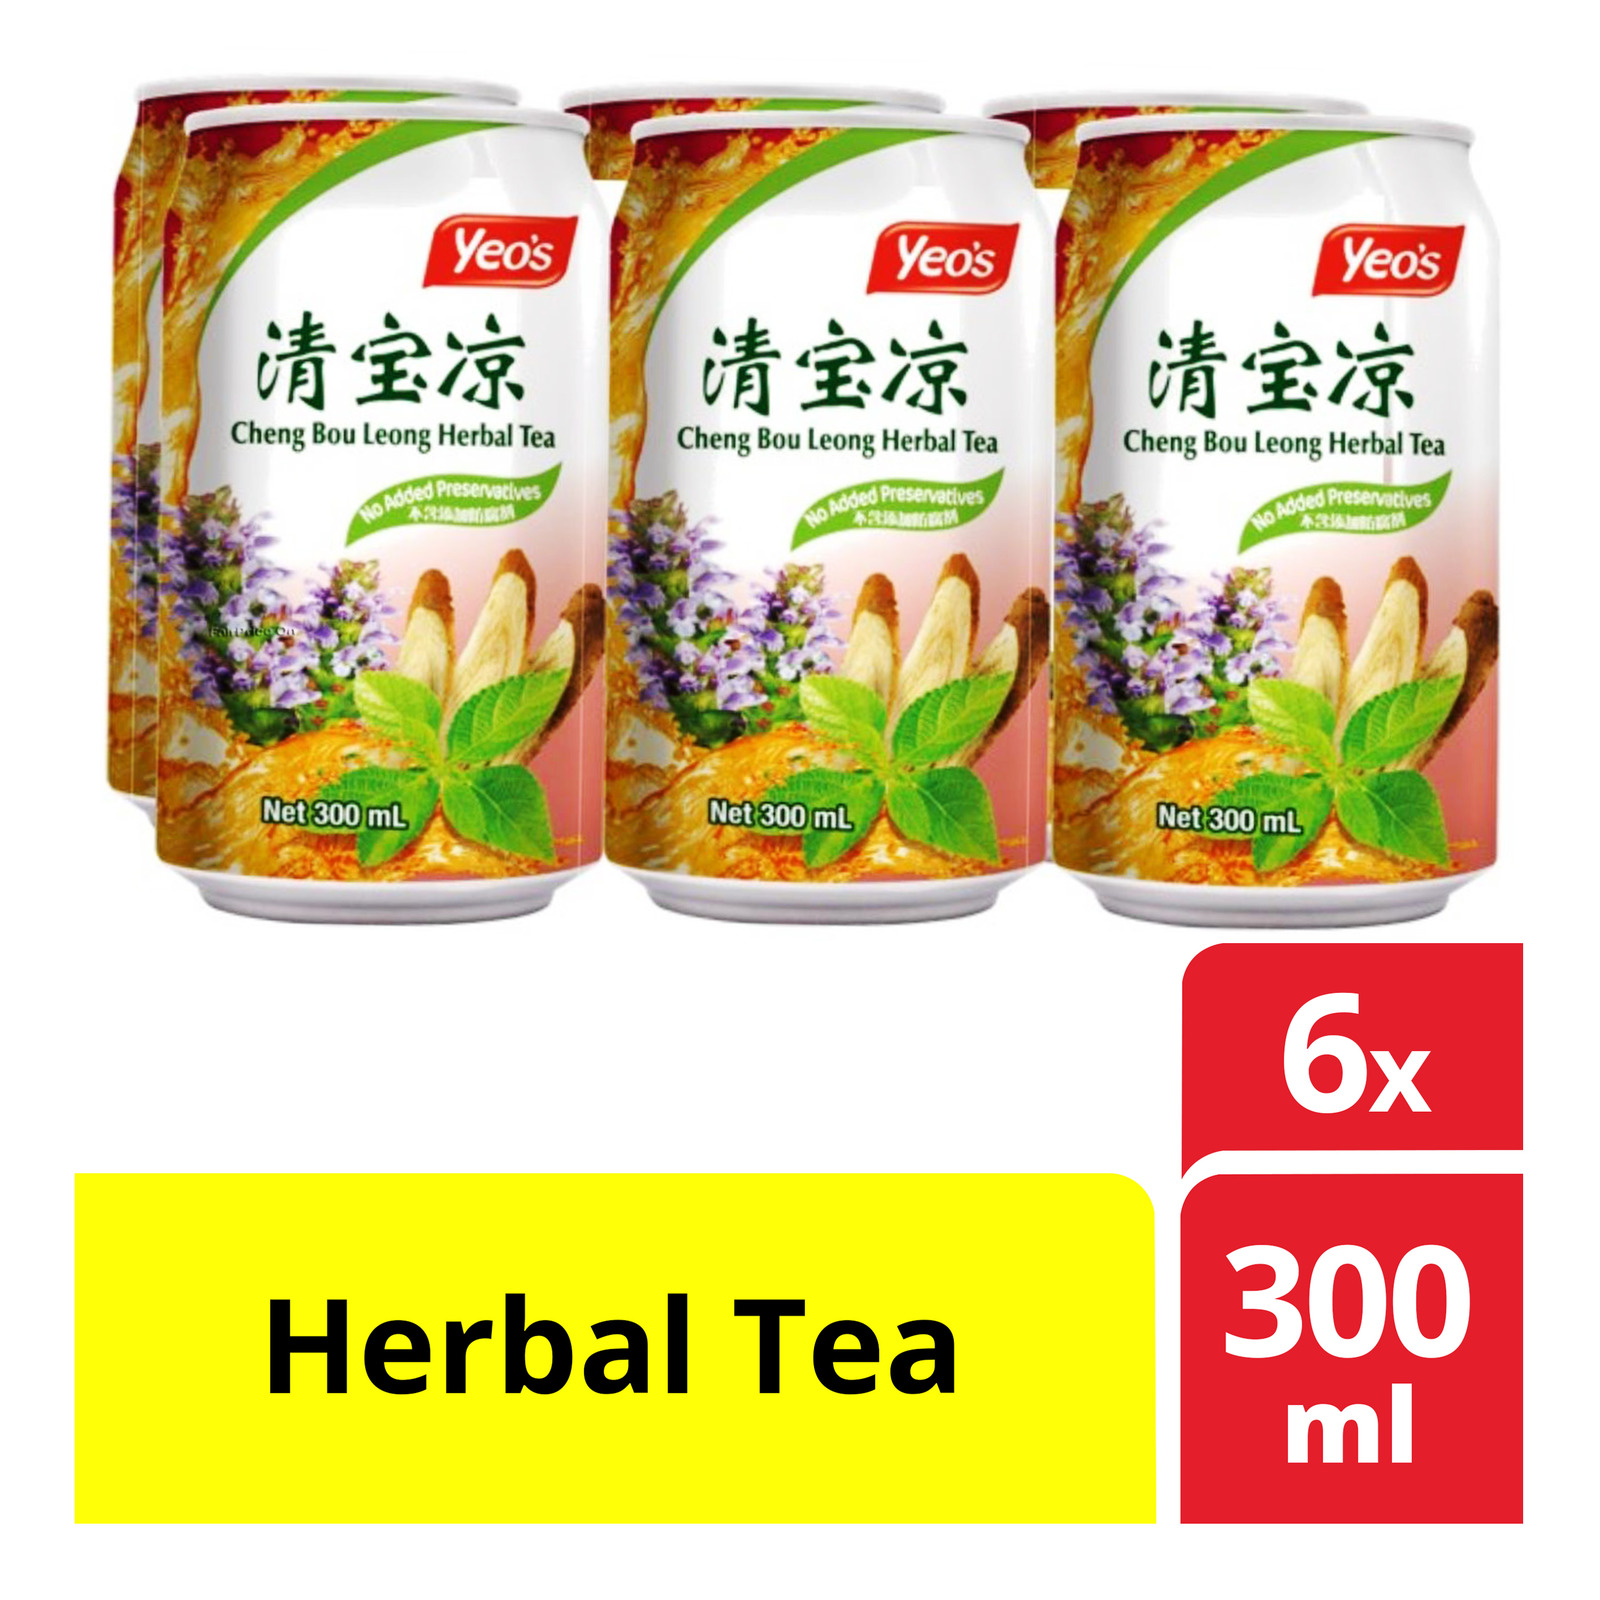 Yeo's Can Drink - Cheng Bou Leong Herbal Tea